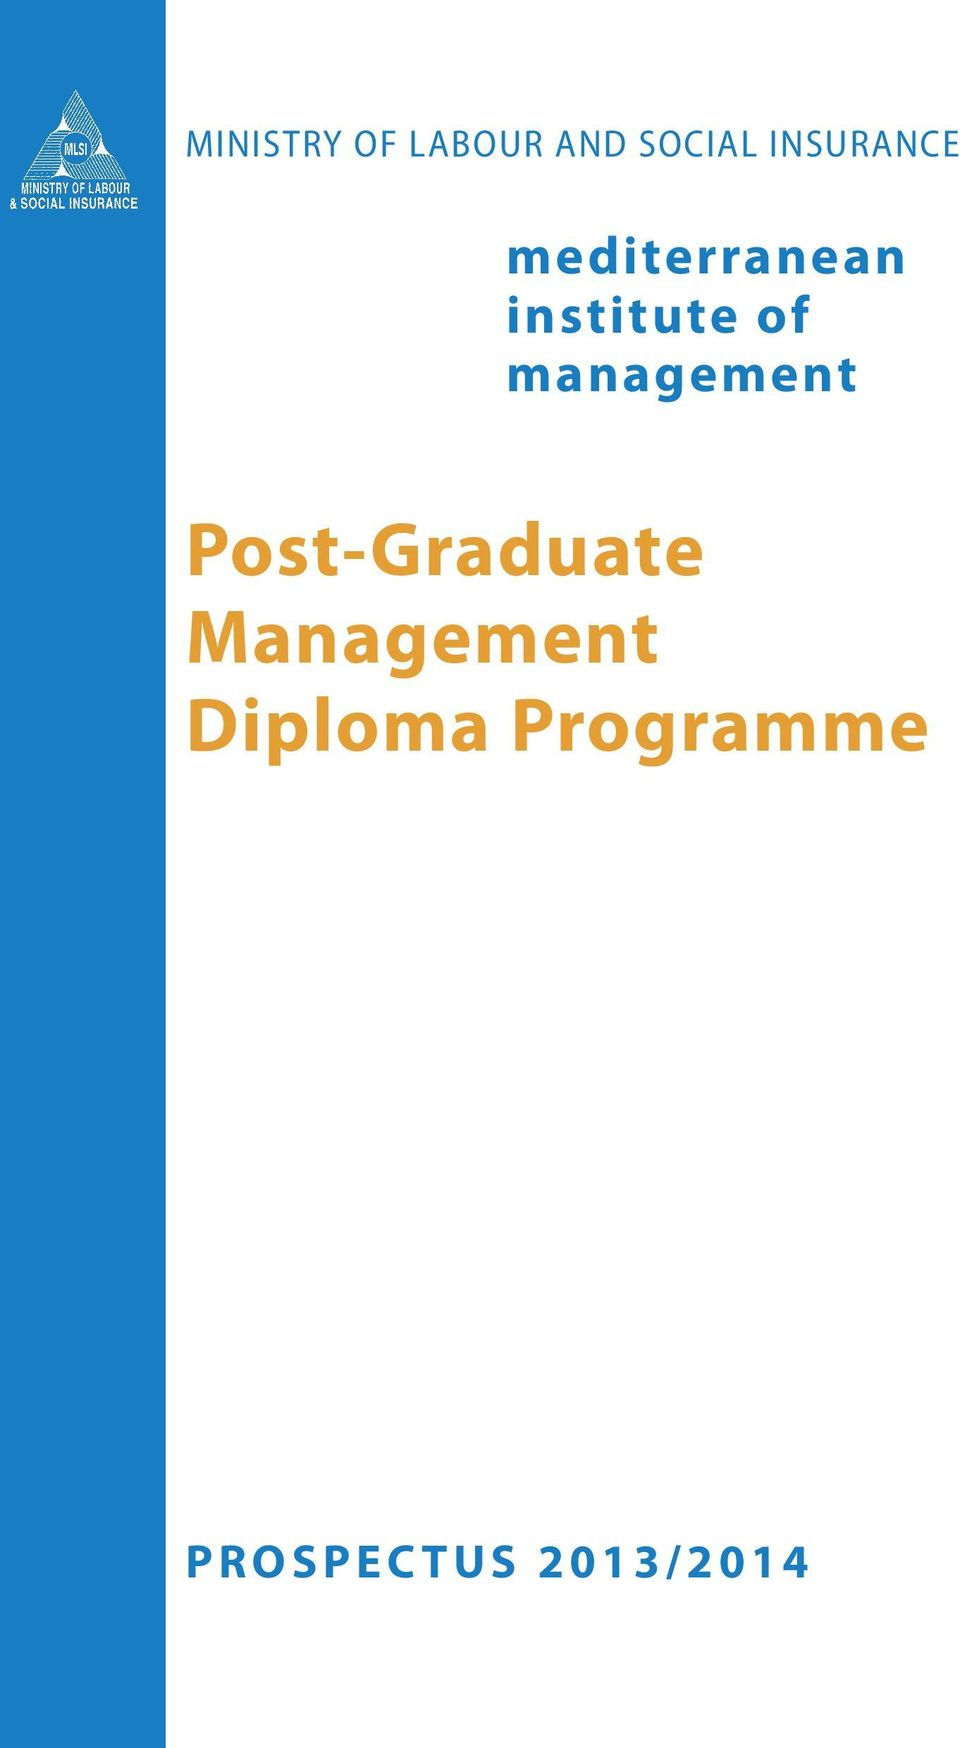 Post-Graduate Management Diploma